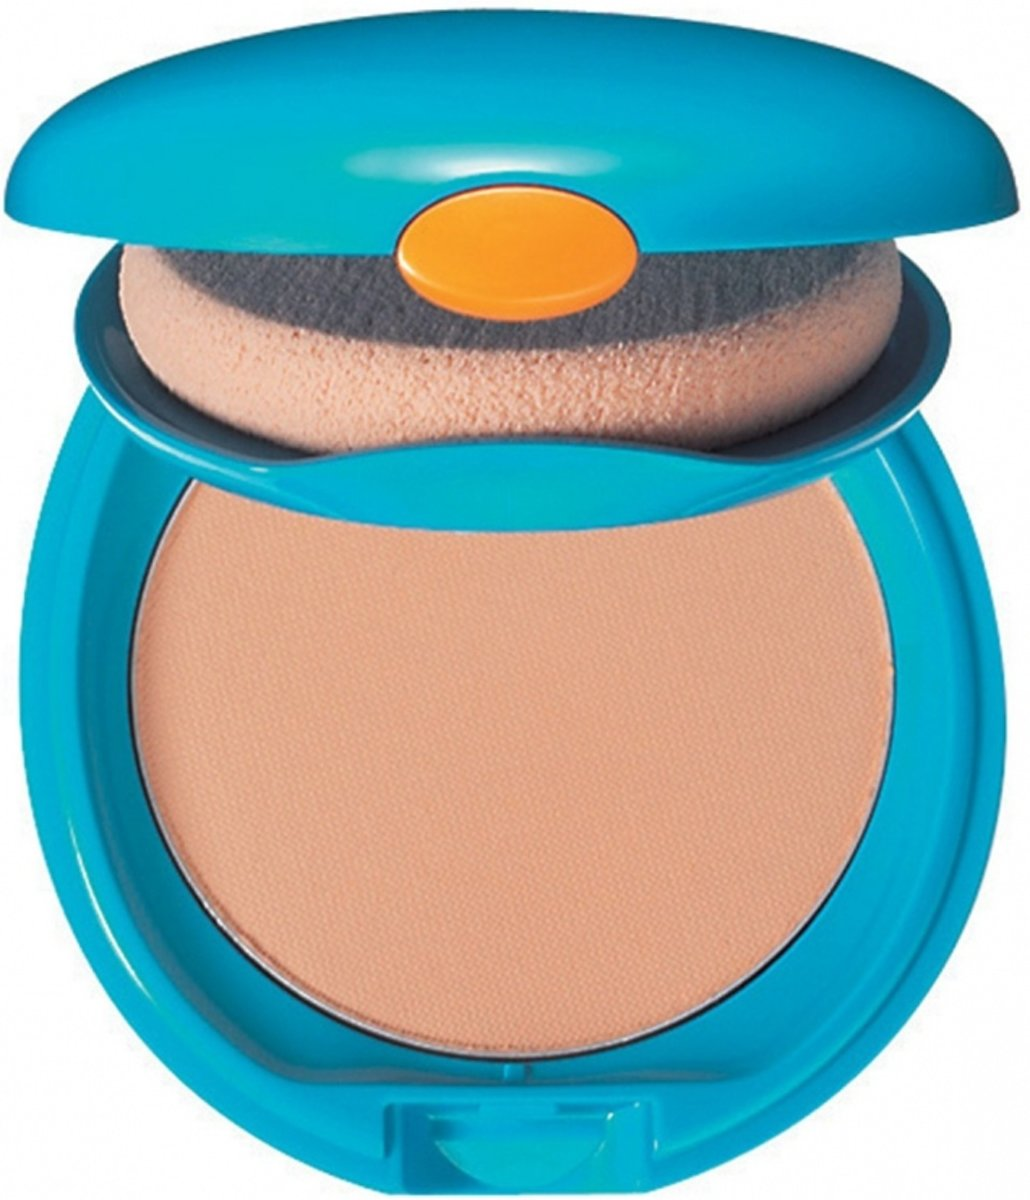 Shiseido UV Protective Compact Foundation 12 gr - Dark Beige